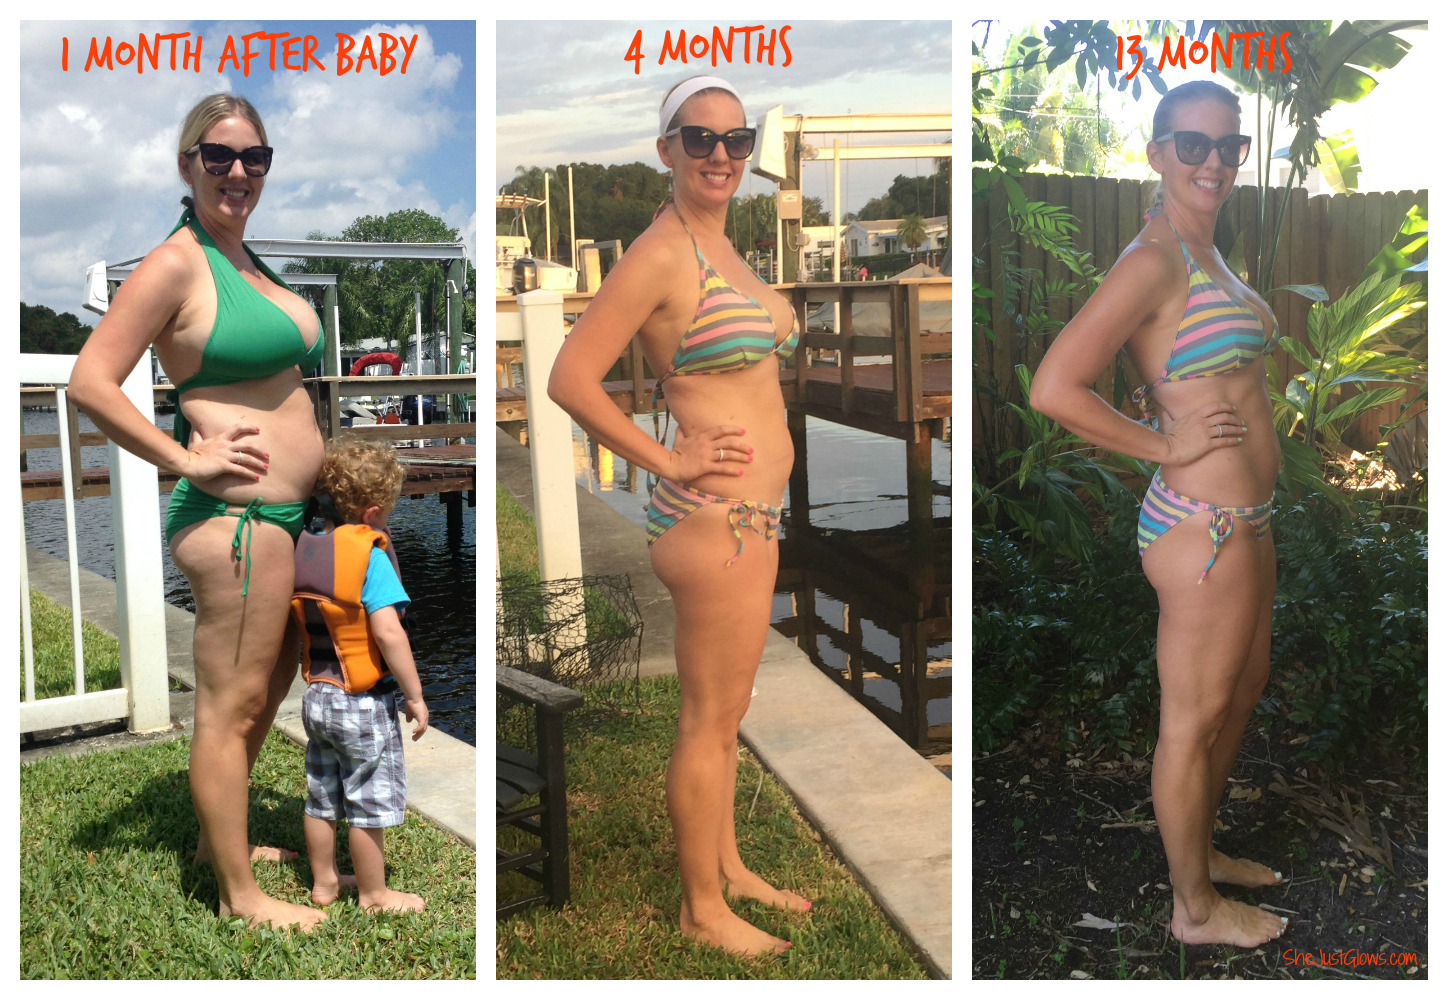 A Real Picture of Post-Pregnancy: 13 Months SheJustGlows.com